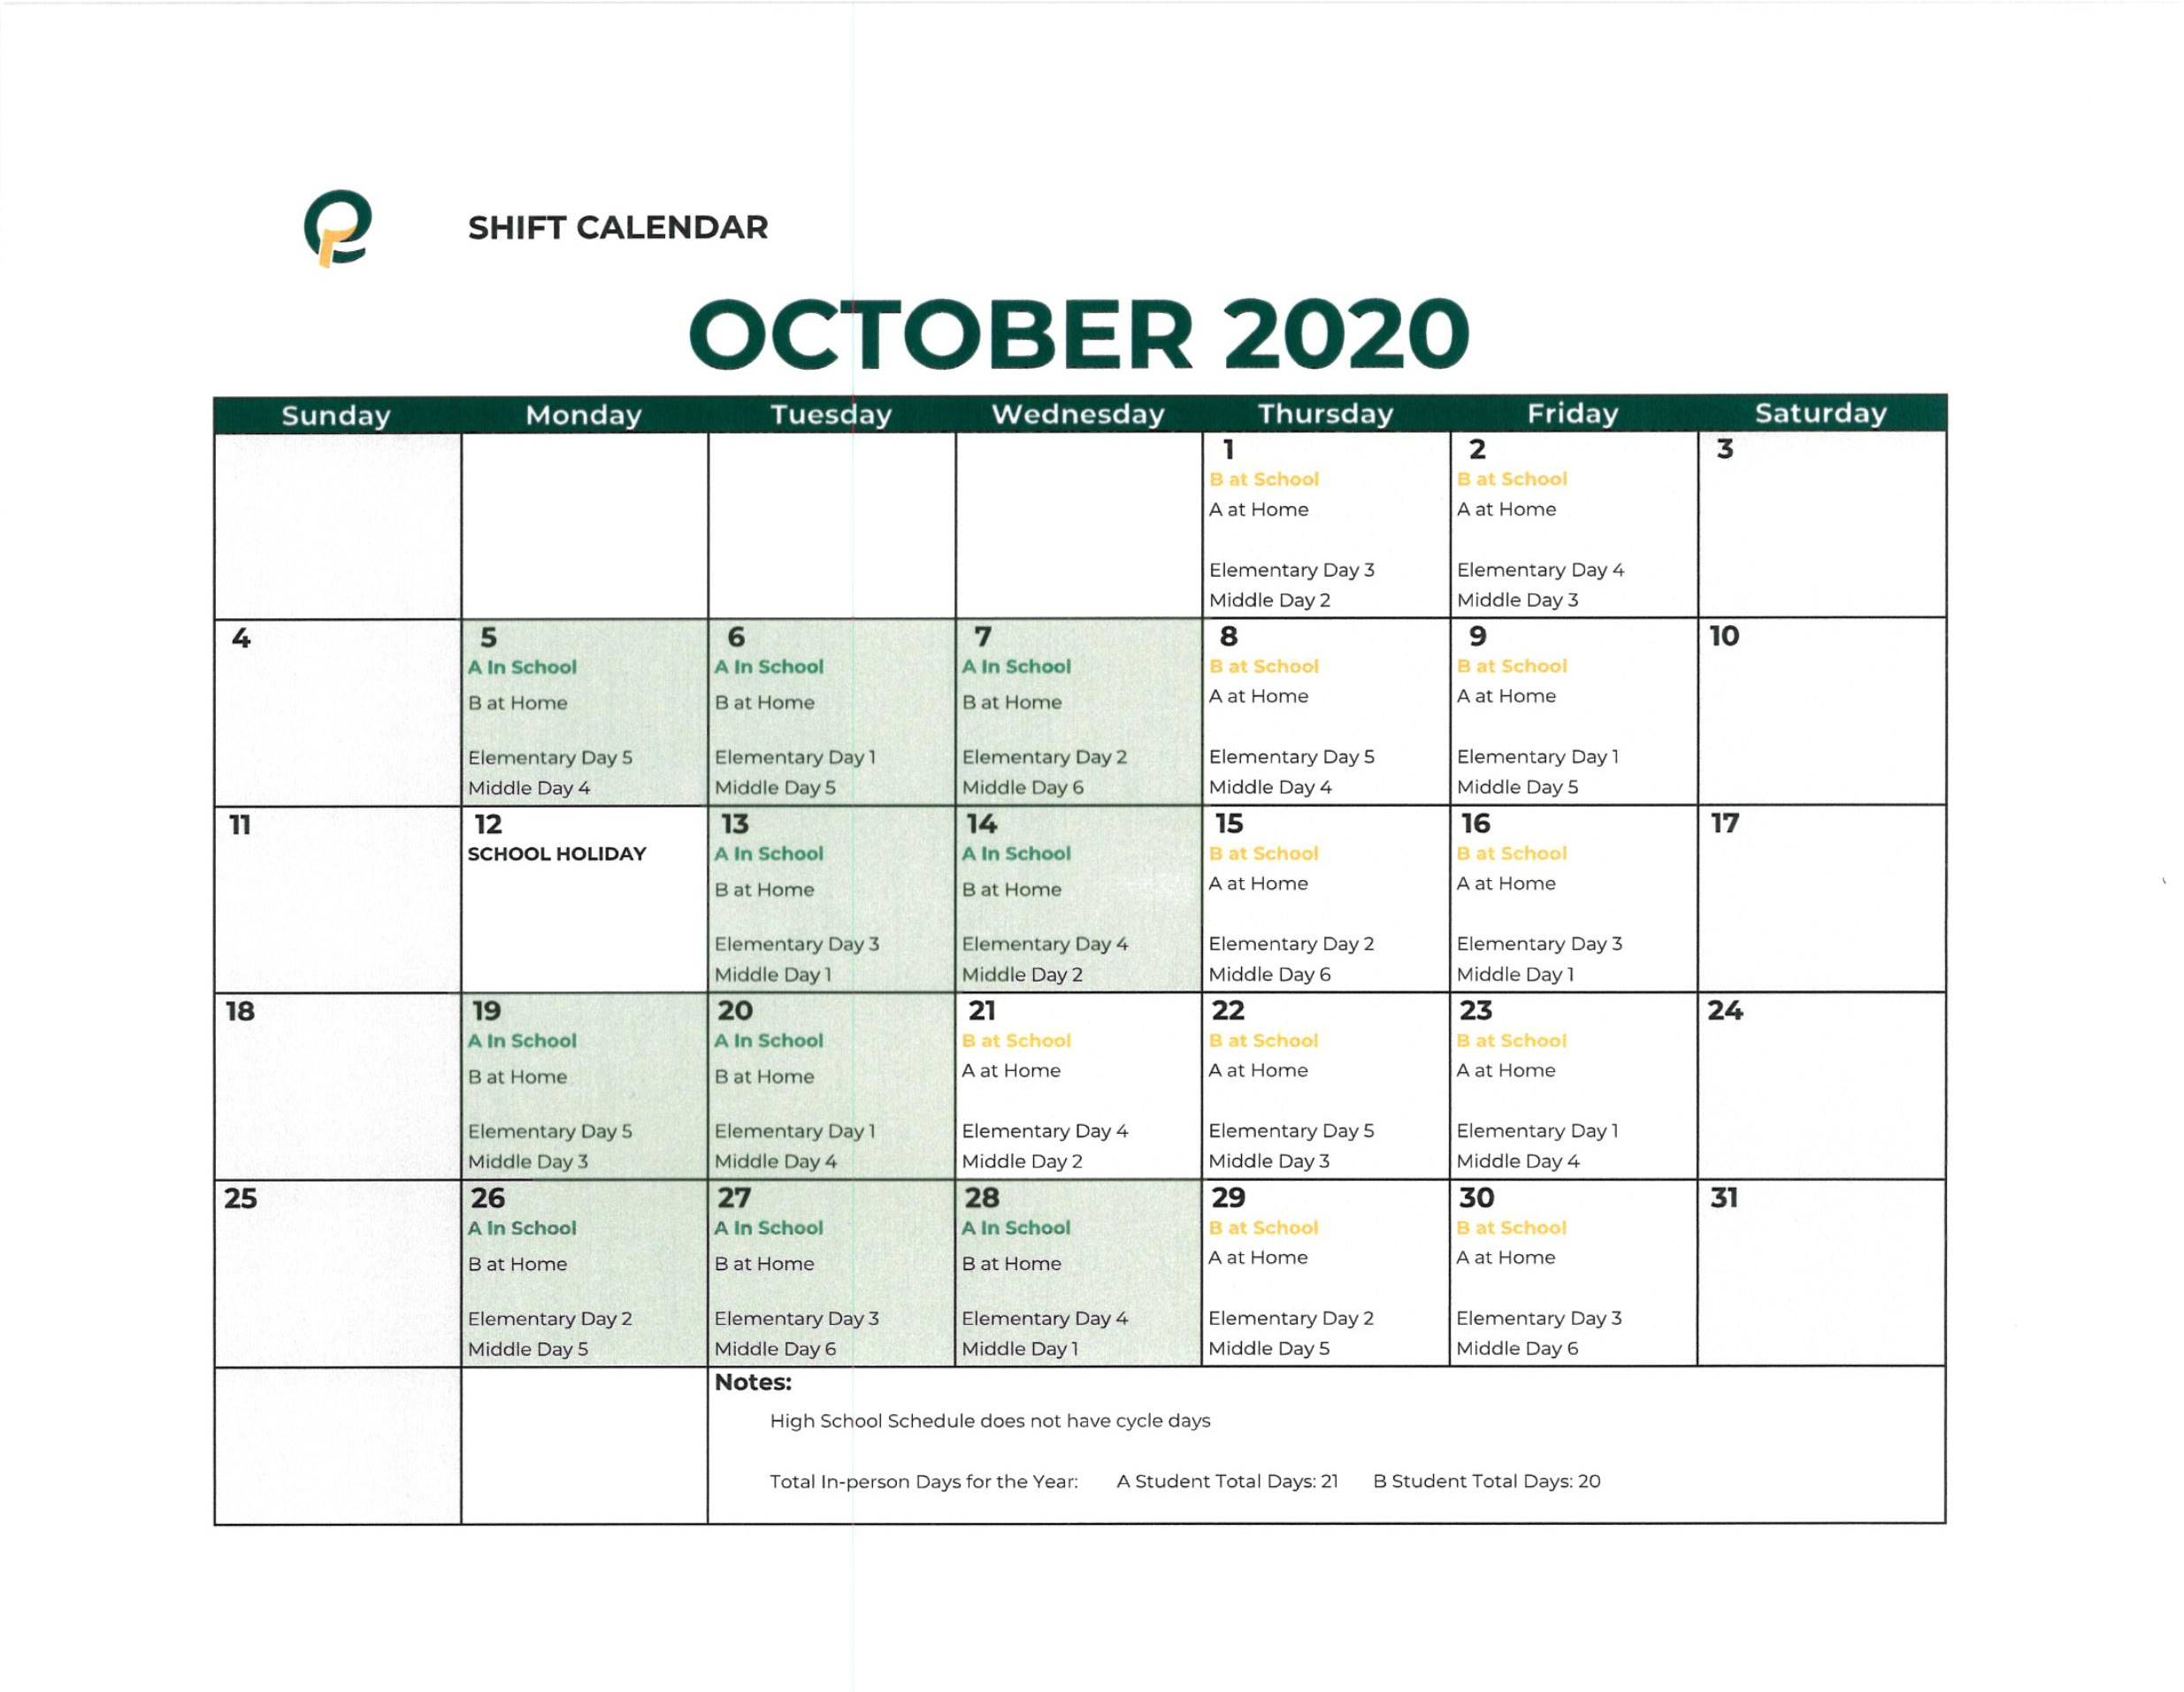 Shift Calendar For Hybrid Students